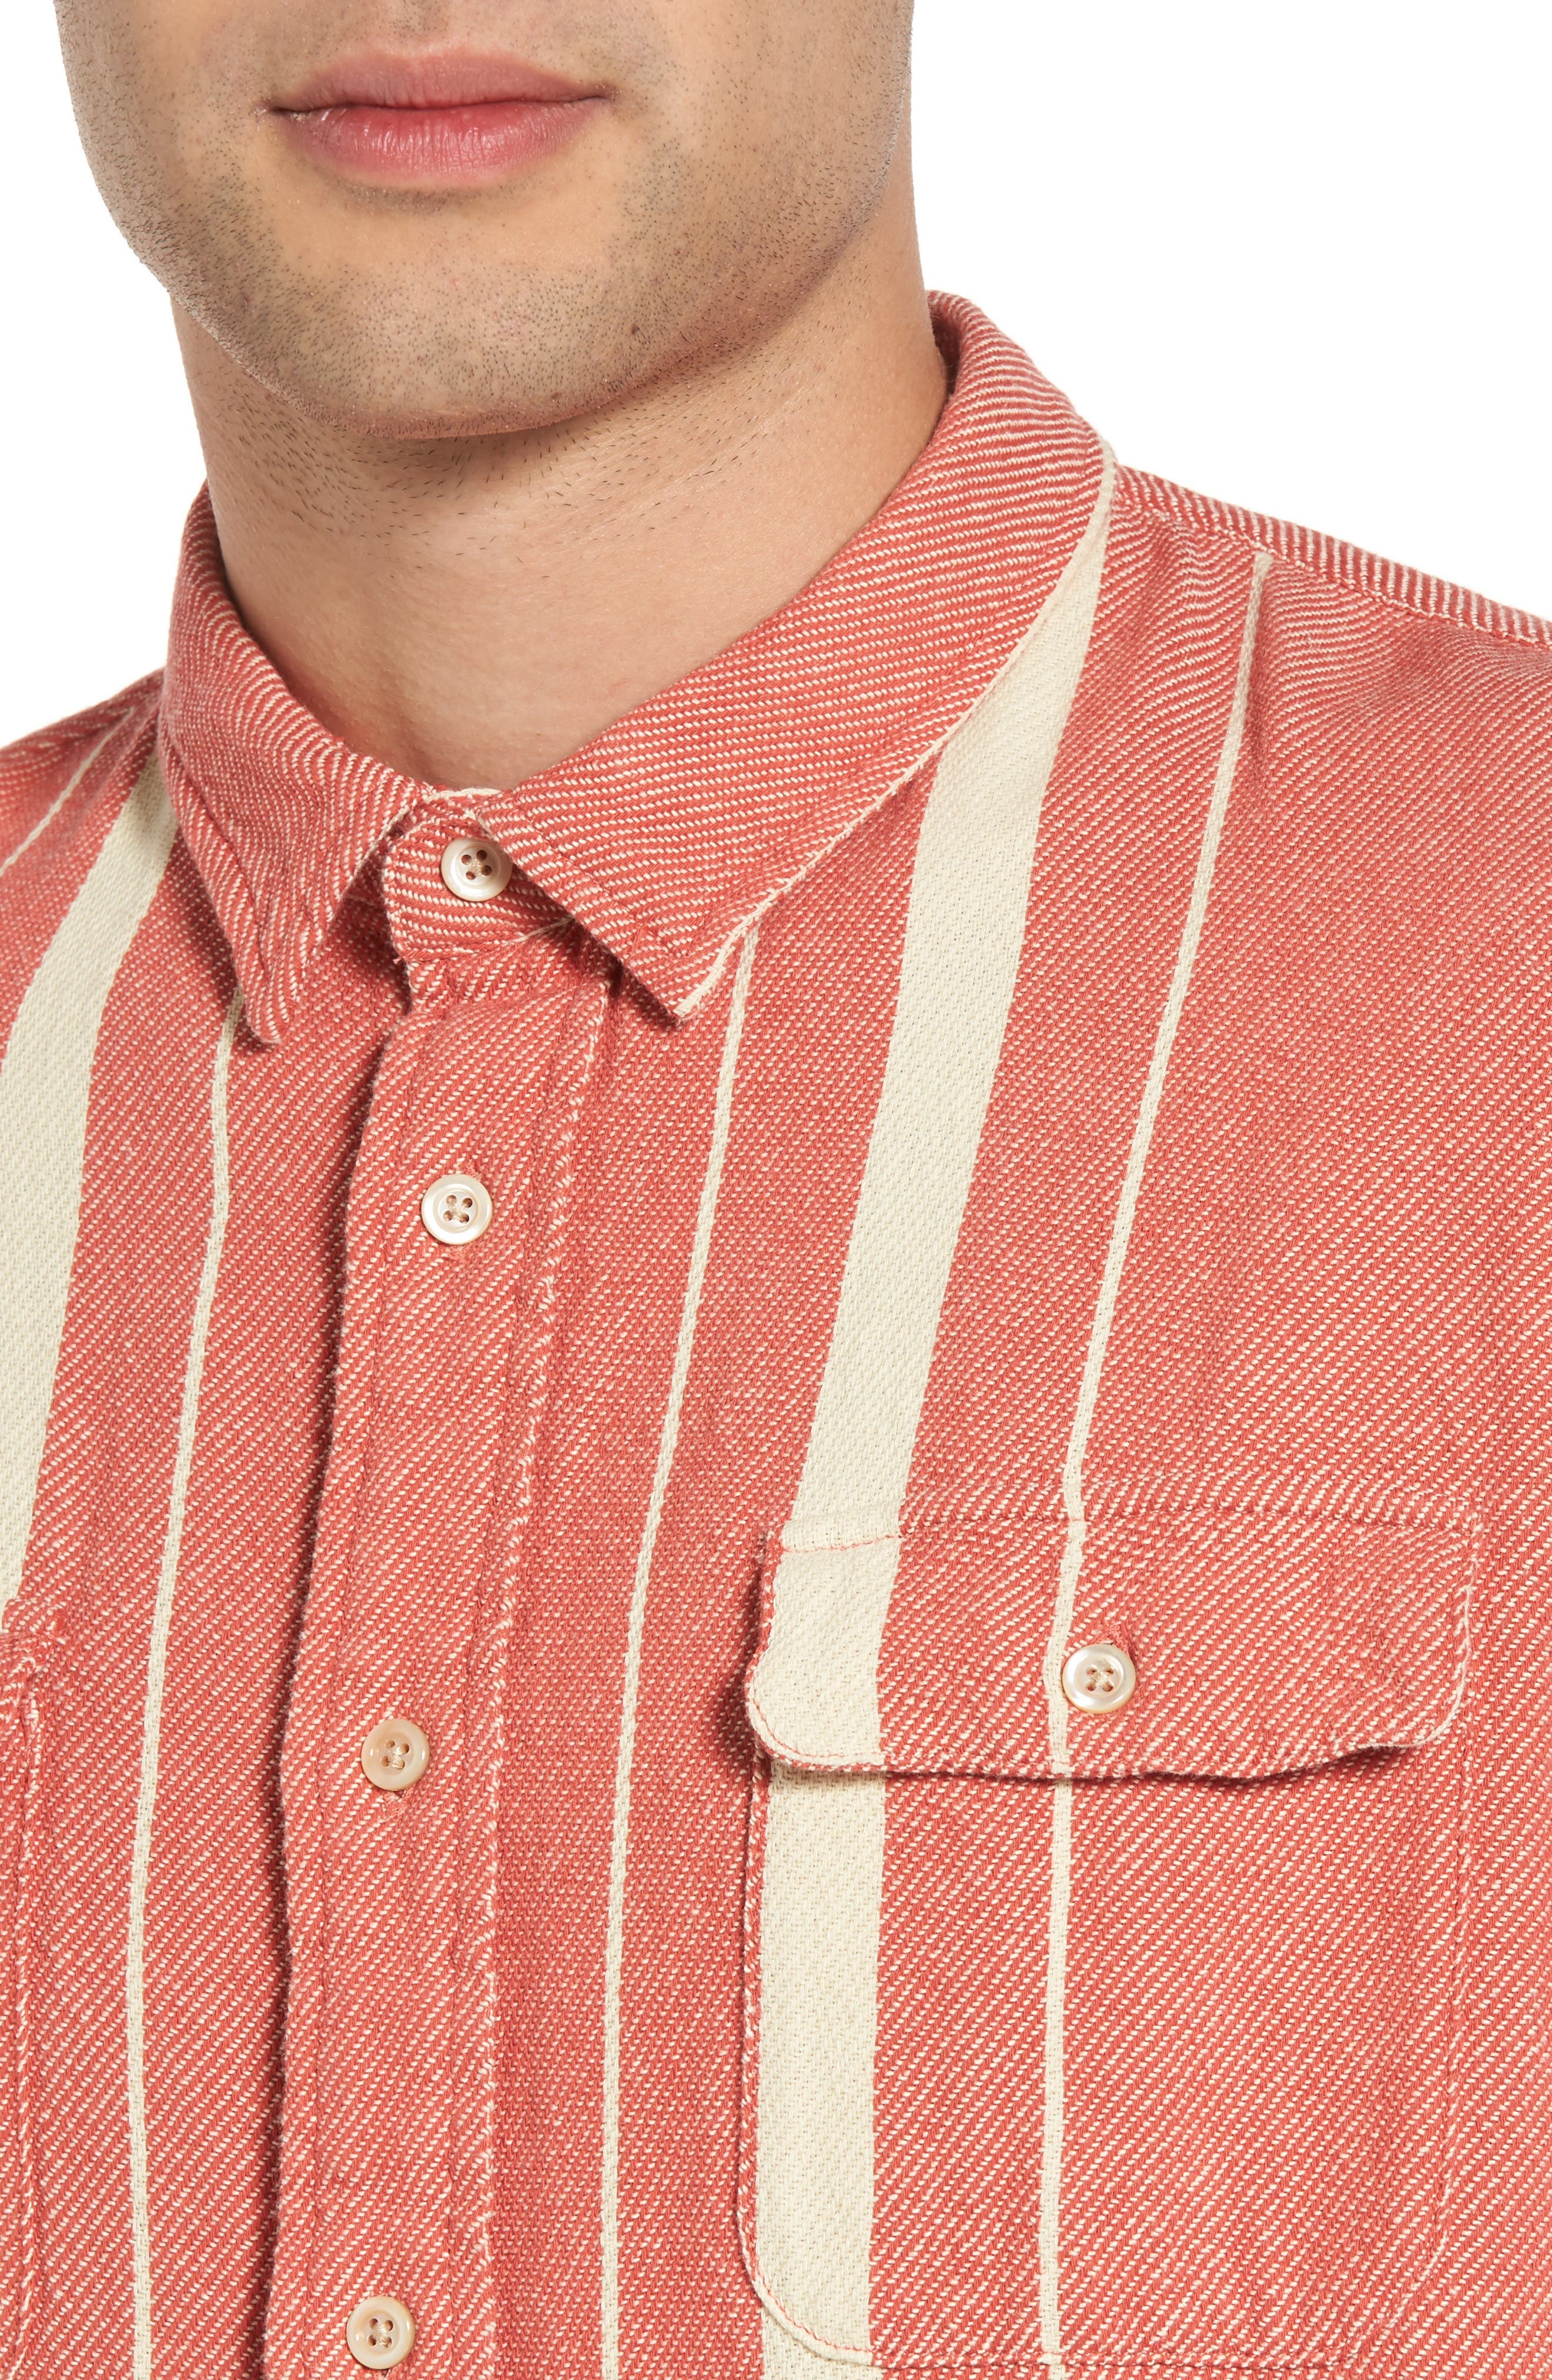 Shorthorn Plaid Woven Shirt,                             Alternate thumbnail 4, color,                             600